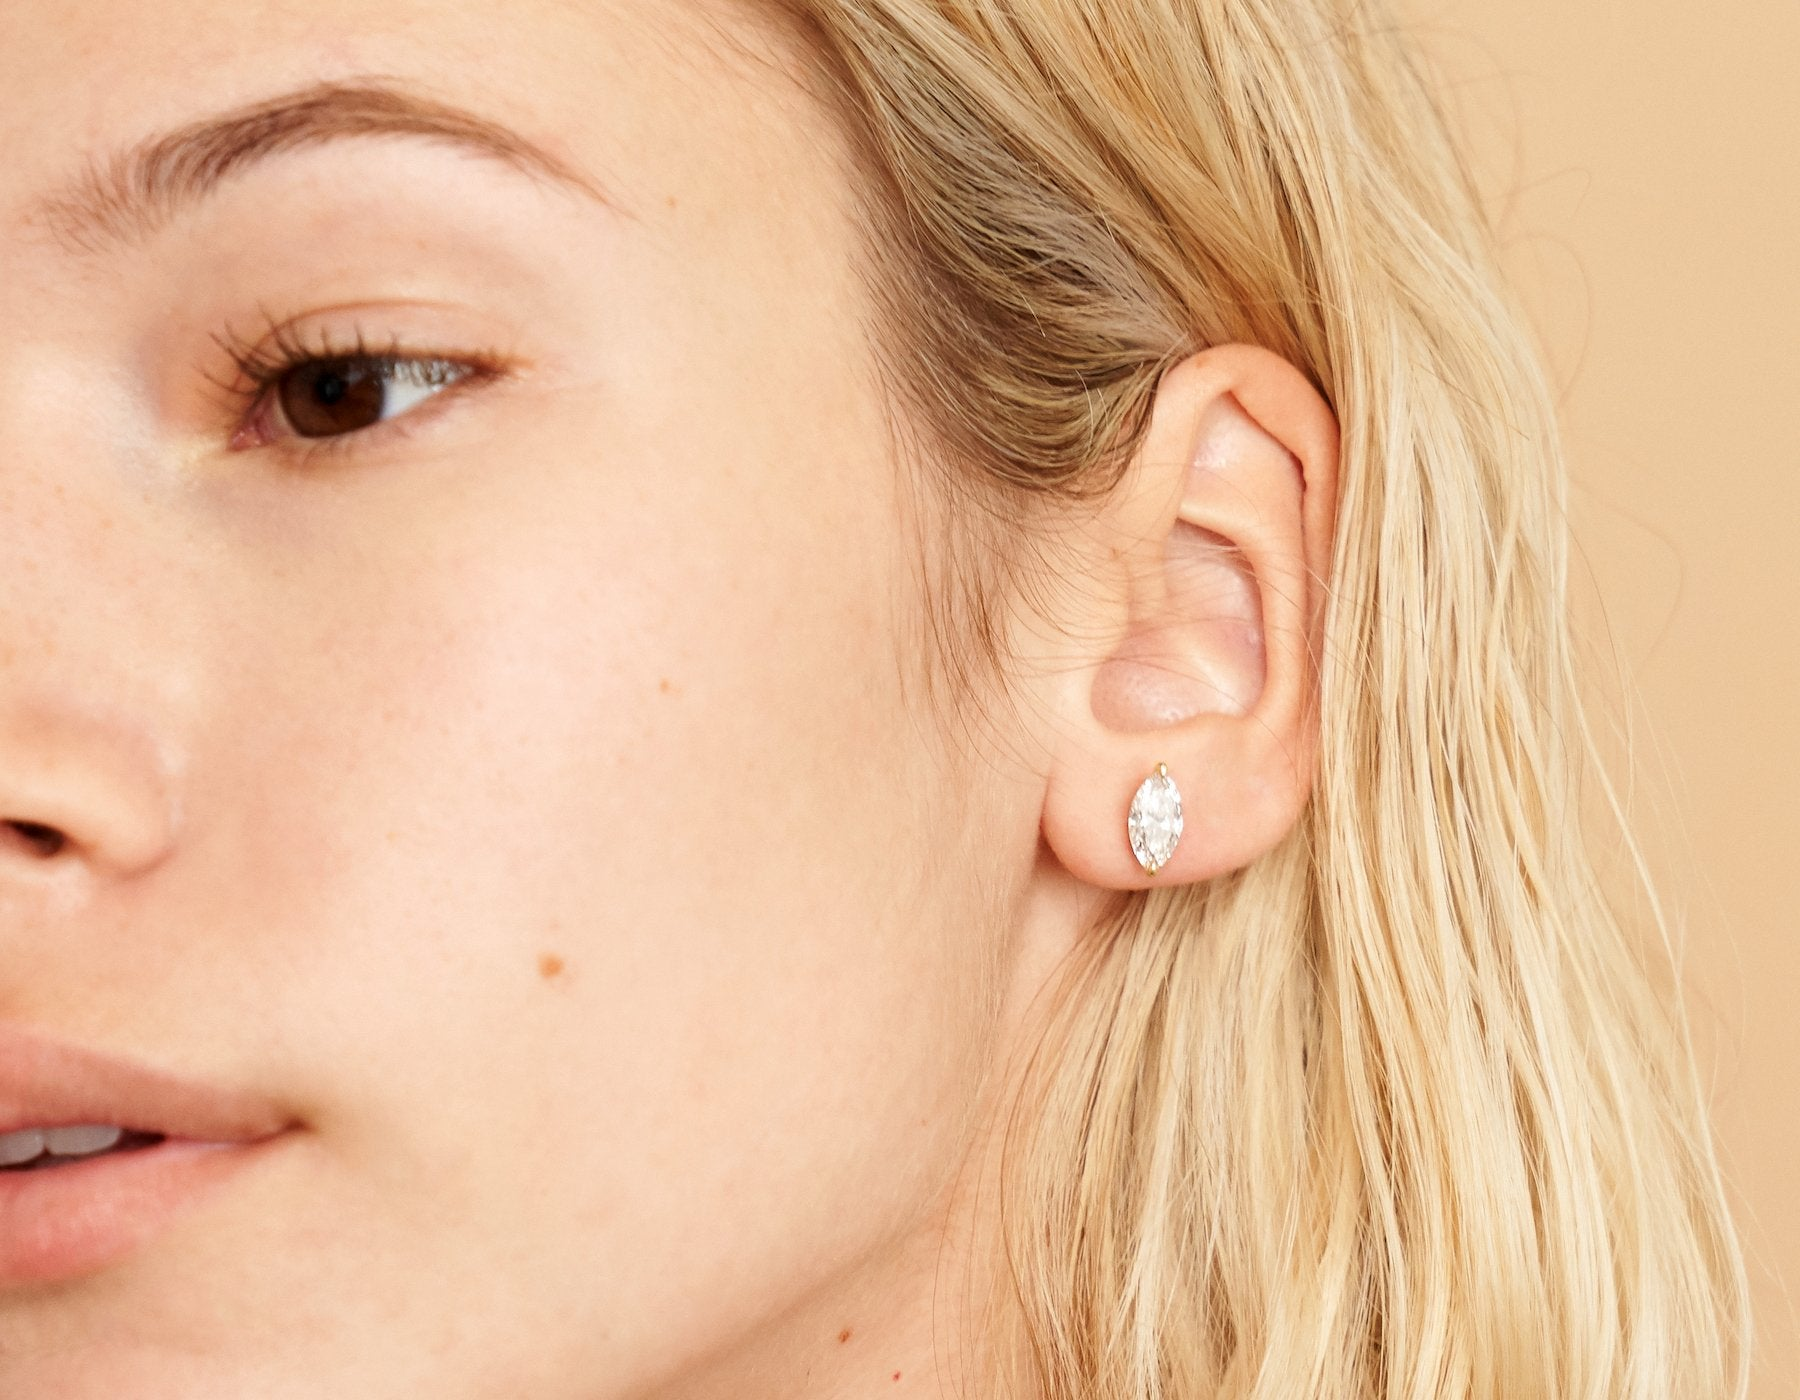 Model wearing Vrai 14K solid gold solitaire marquise diamond studs earrings 1ct minimalist delicate, 14K Rose Gold